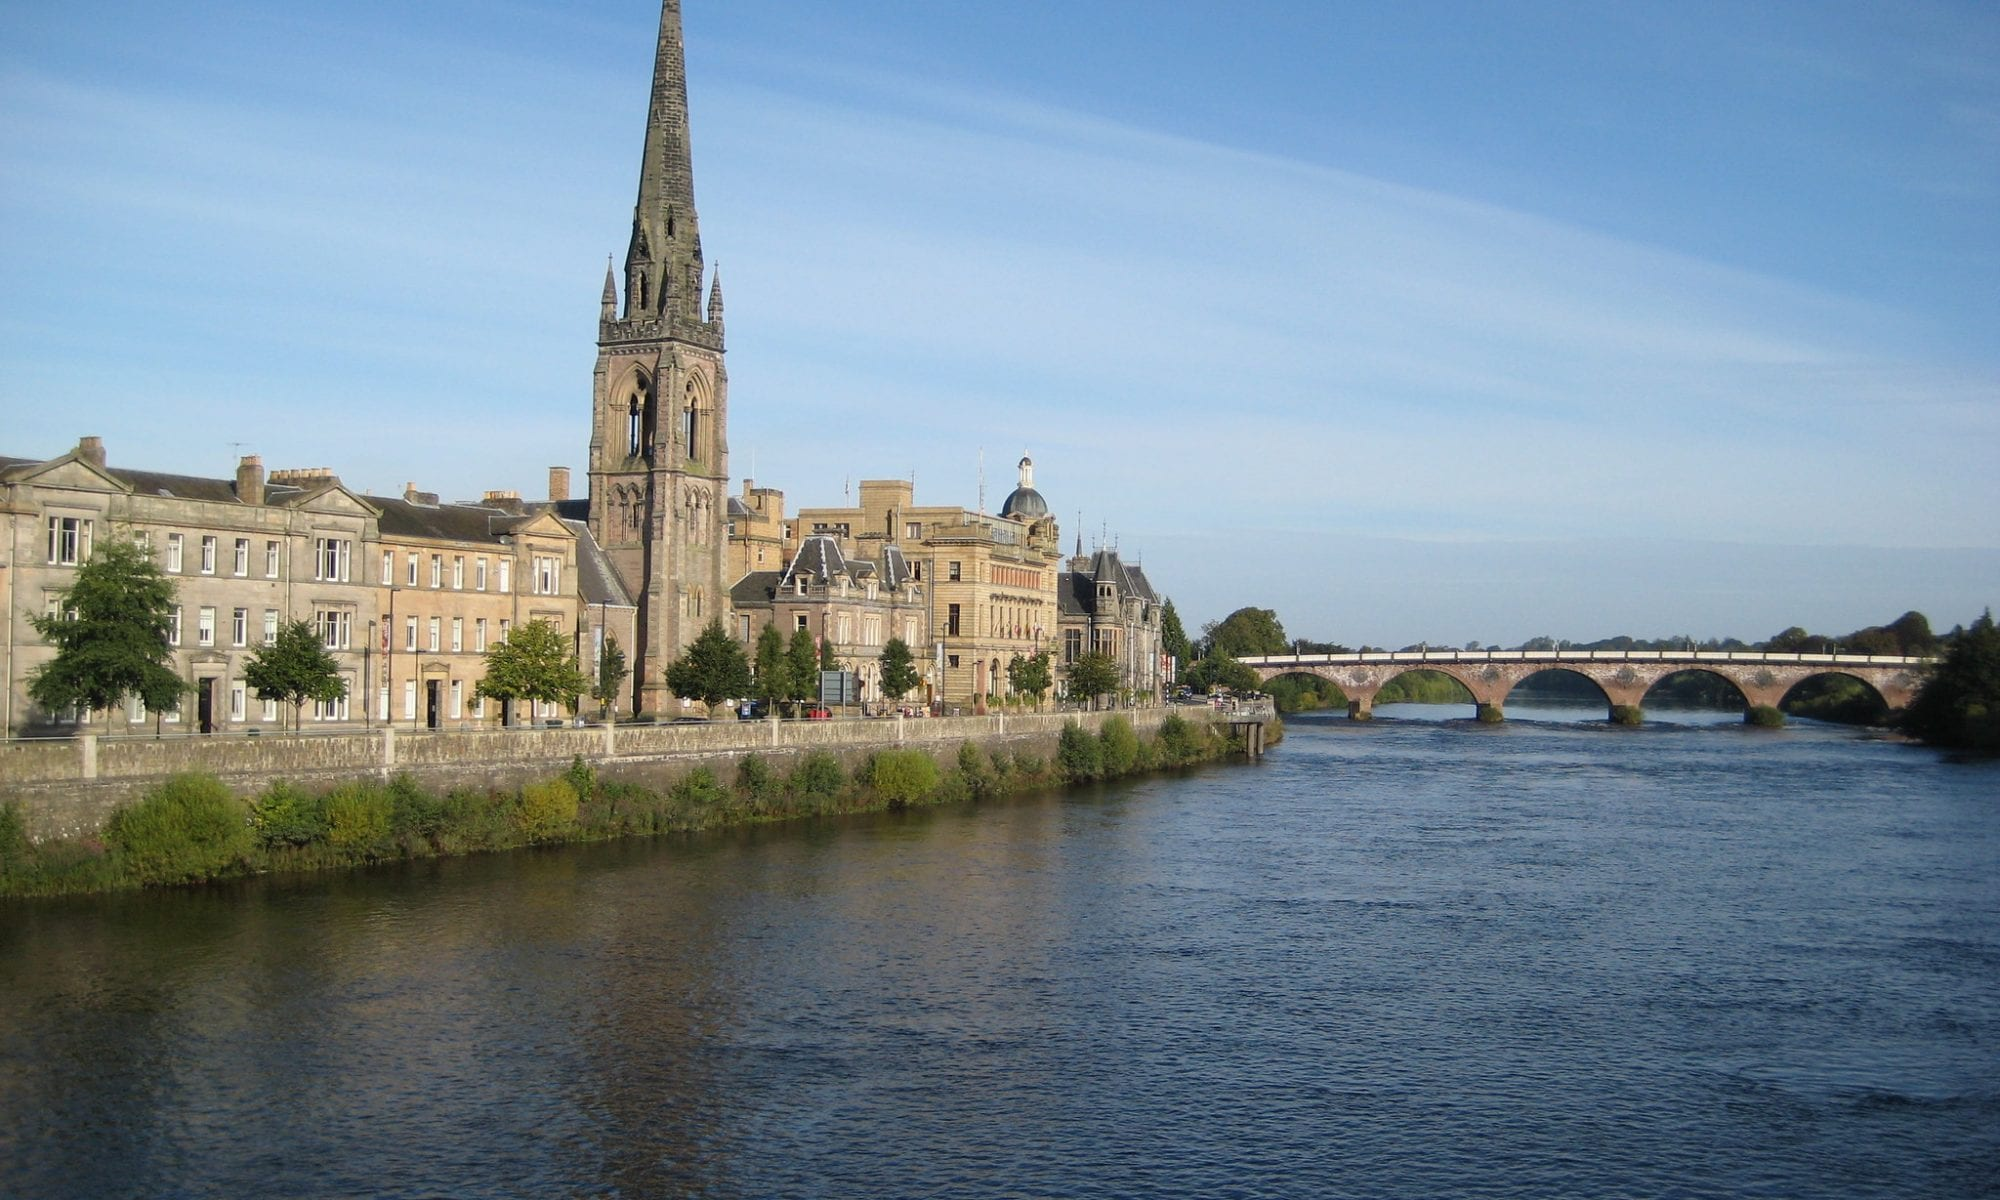 Perth with views along the River Tay